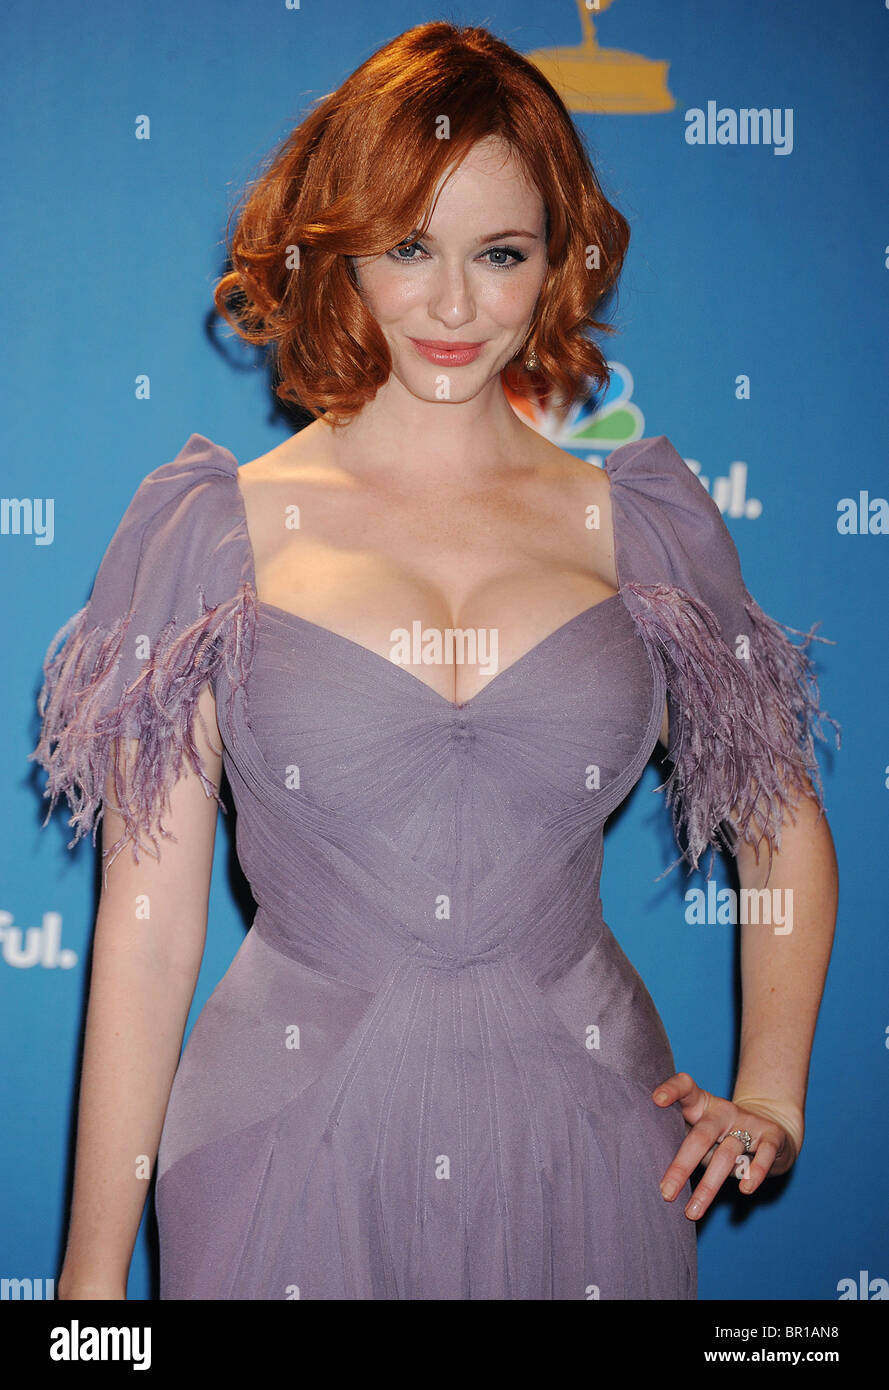 CHRISTINA HENDRICKS - US actress in August 2010. Photo Jeffrey Mayer - Stock Image